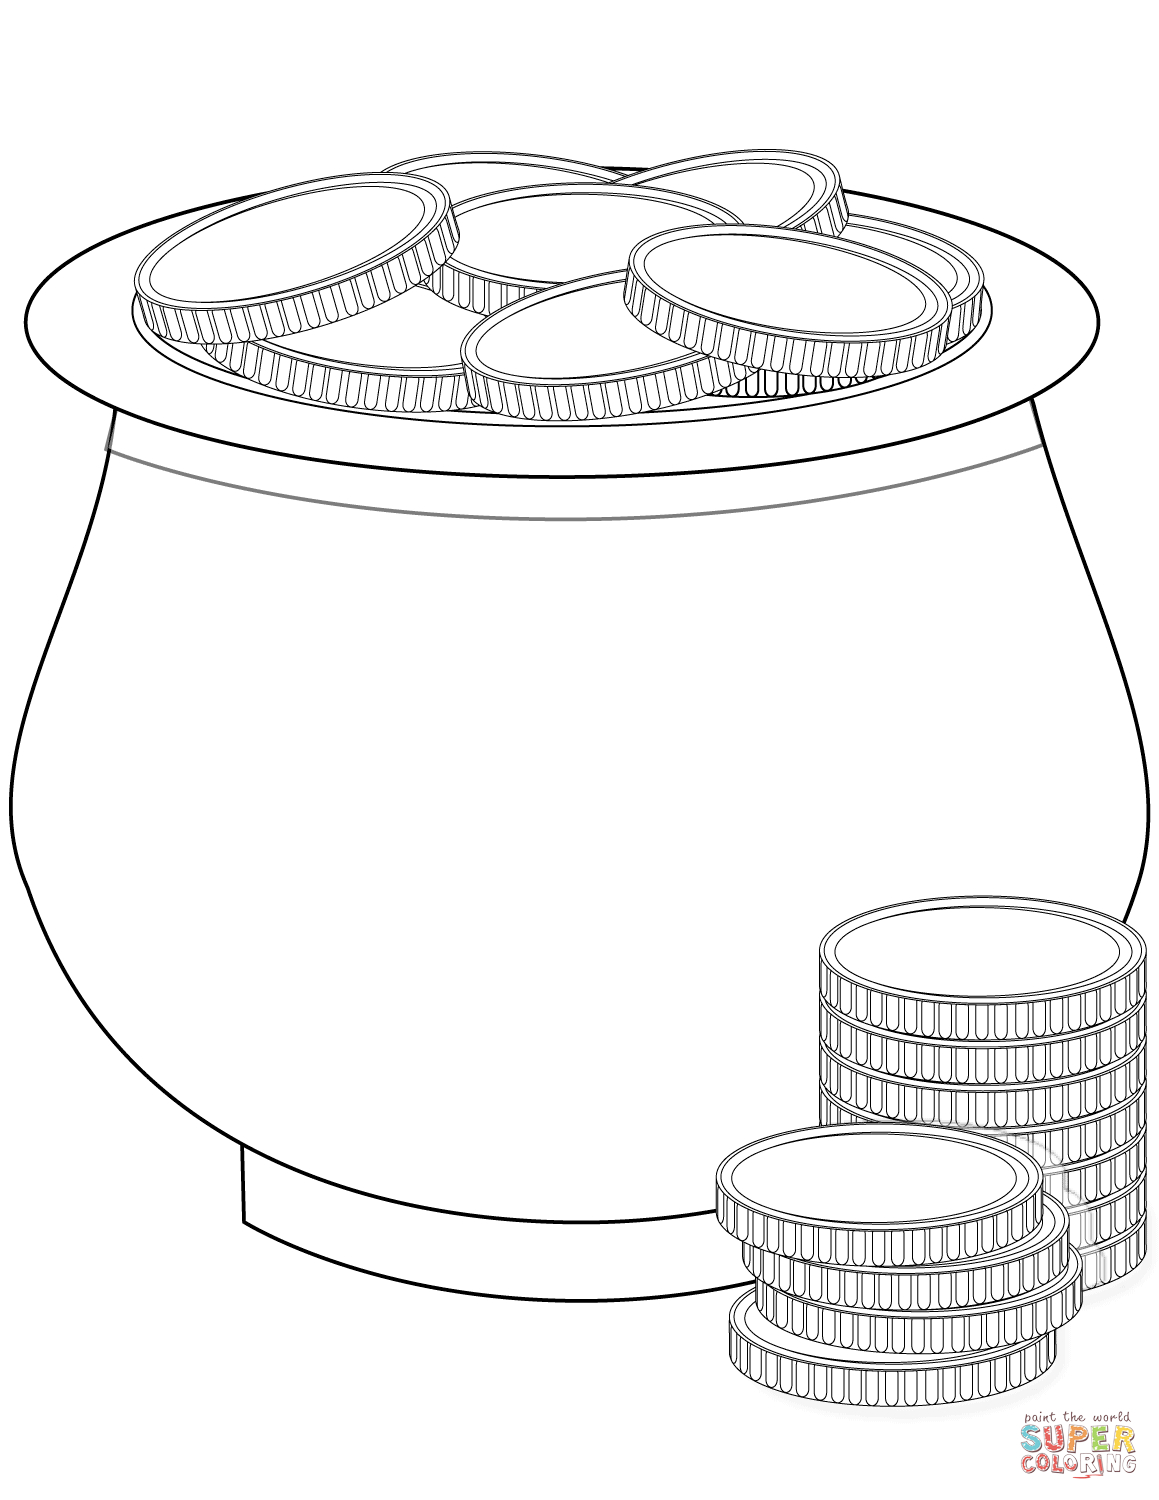 Pot Of Gold Coins Coloring Page   Free Printable Coloring Pages - Free Printable Pot Of Gold Coloring Pages